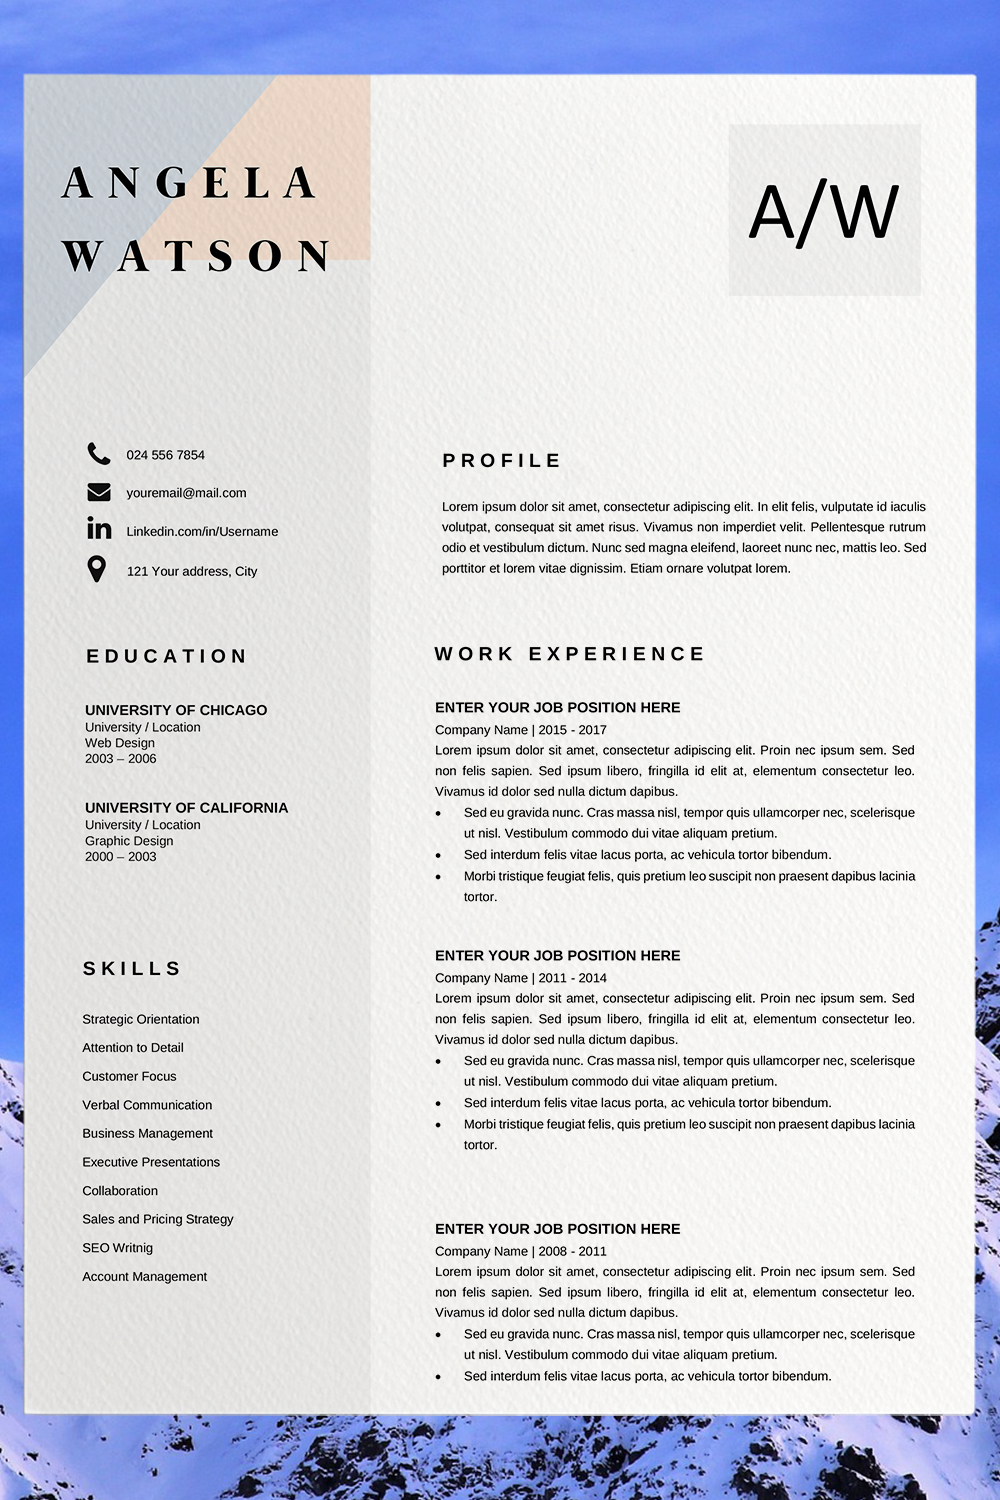 Downloadable Cv Template 2020